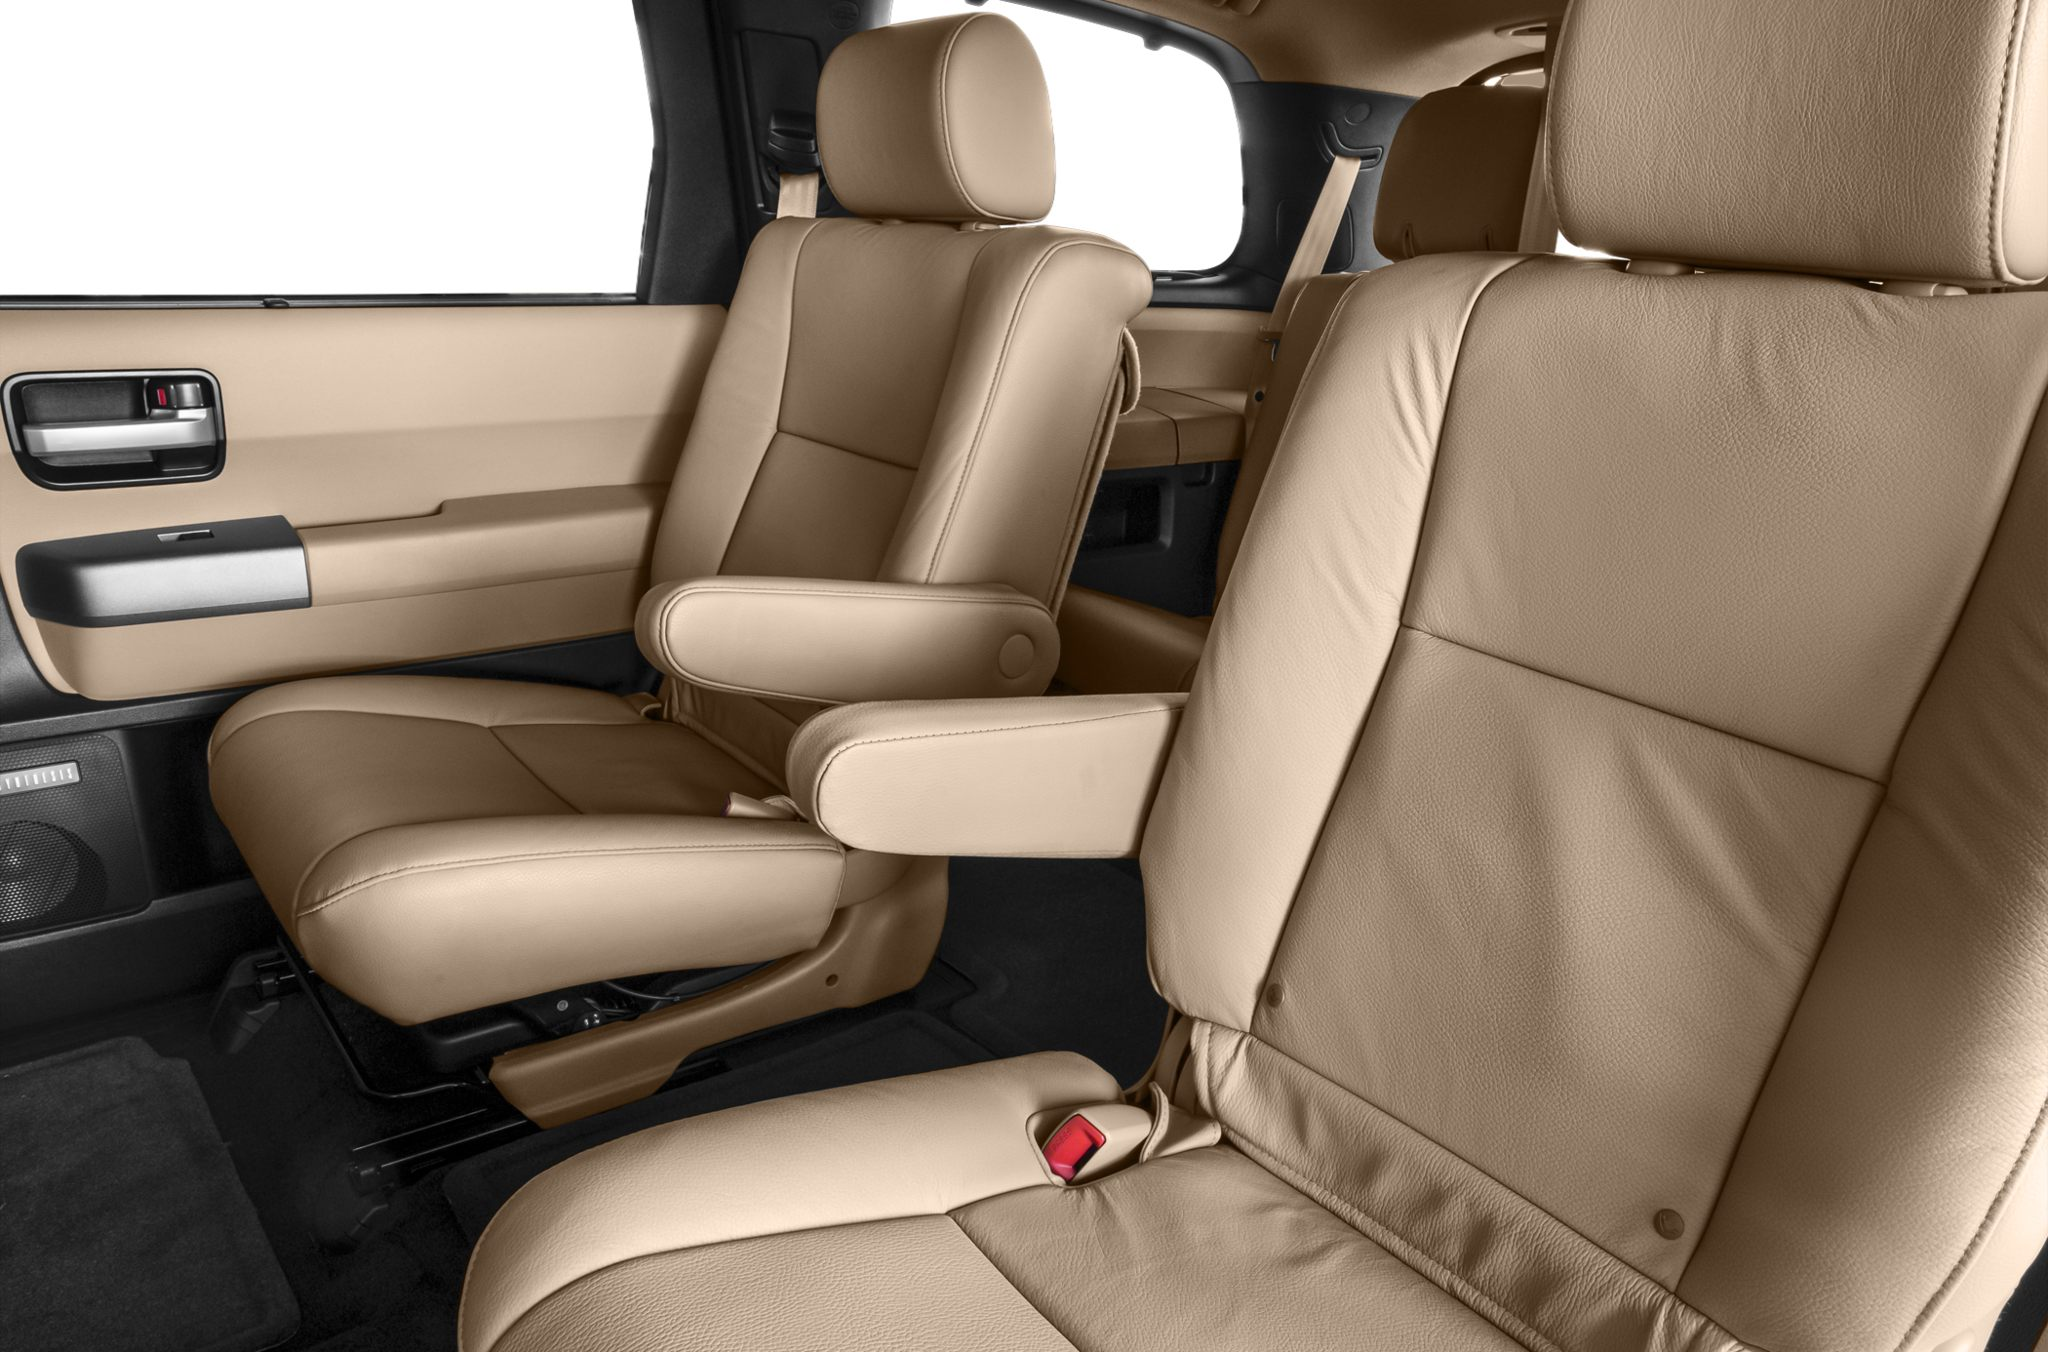 toyota sequoia captains chairs